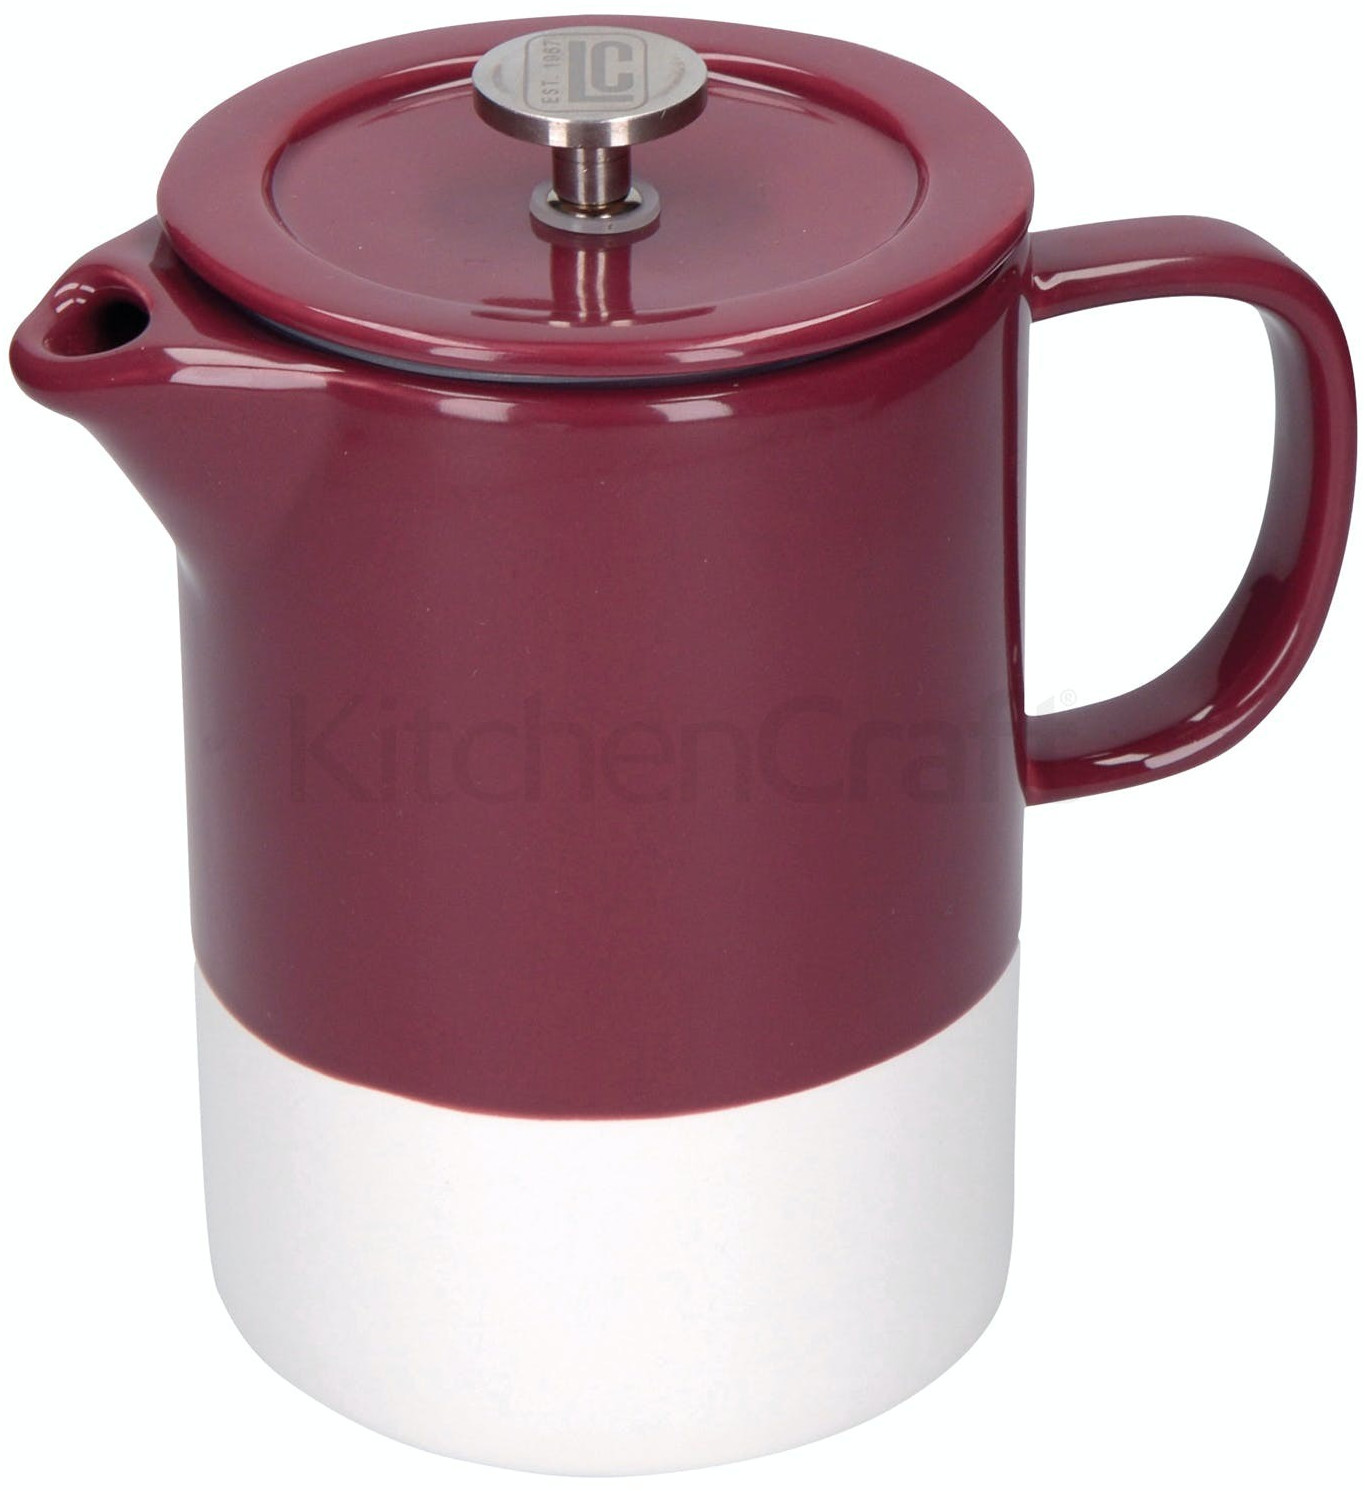 Image of La Cafetiere Barcelona 6 Cup Plum